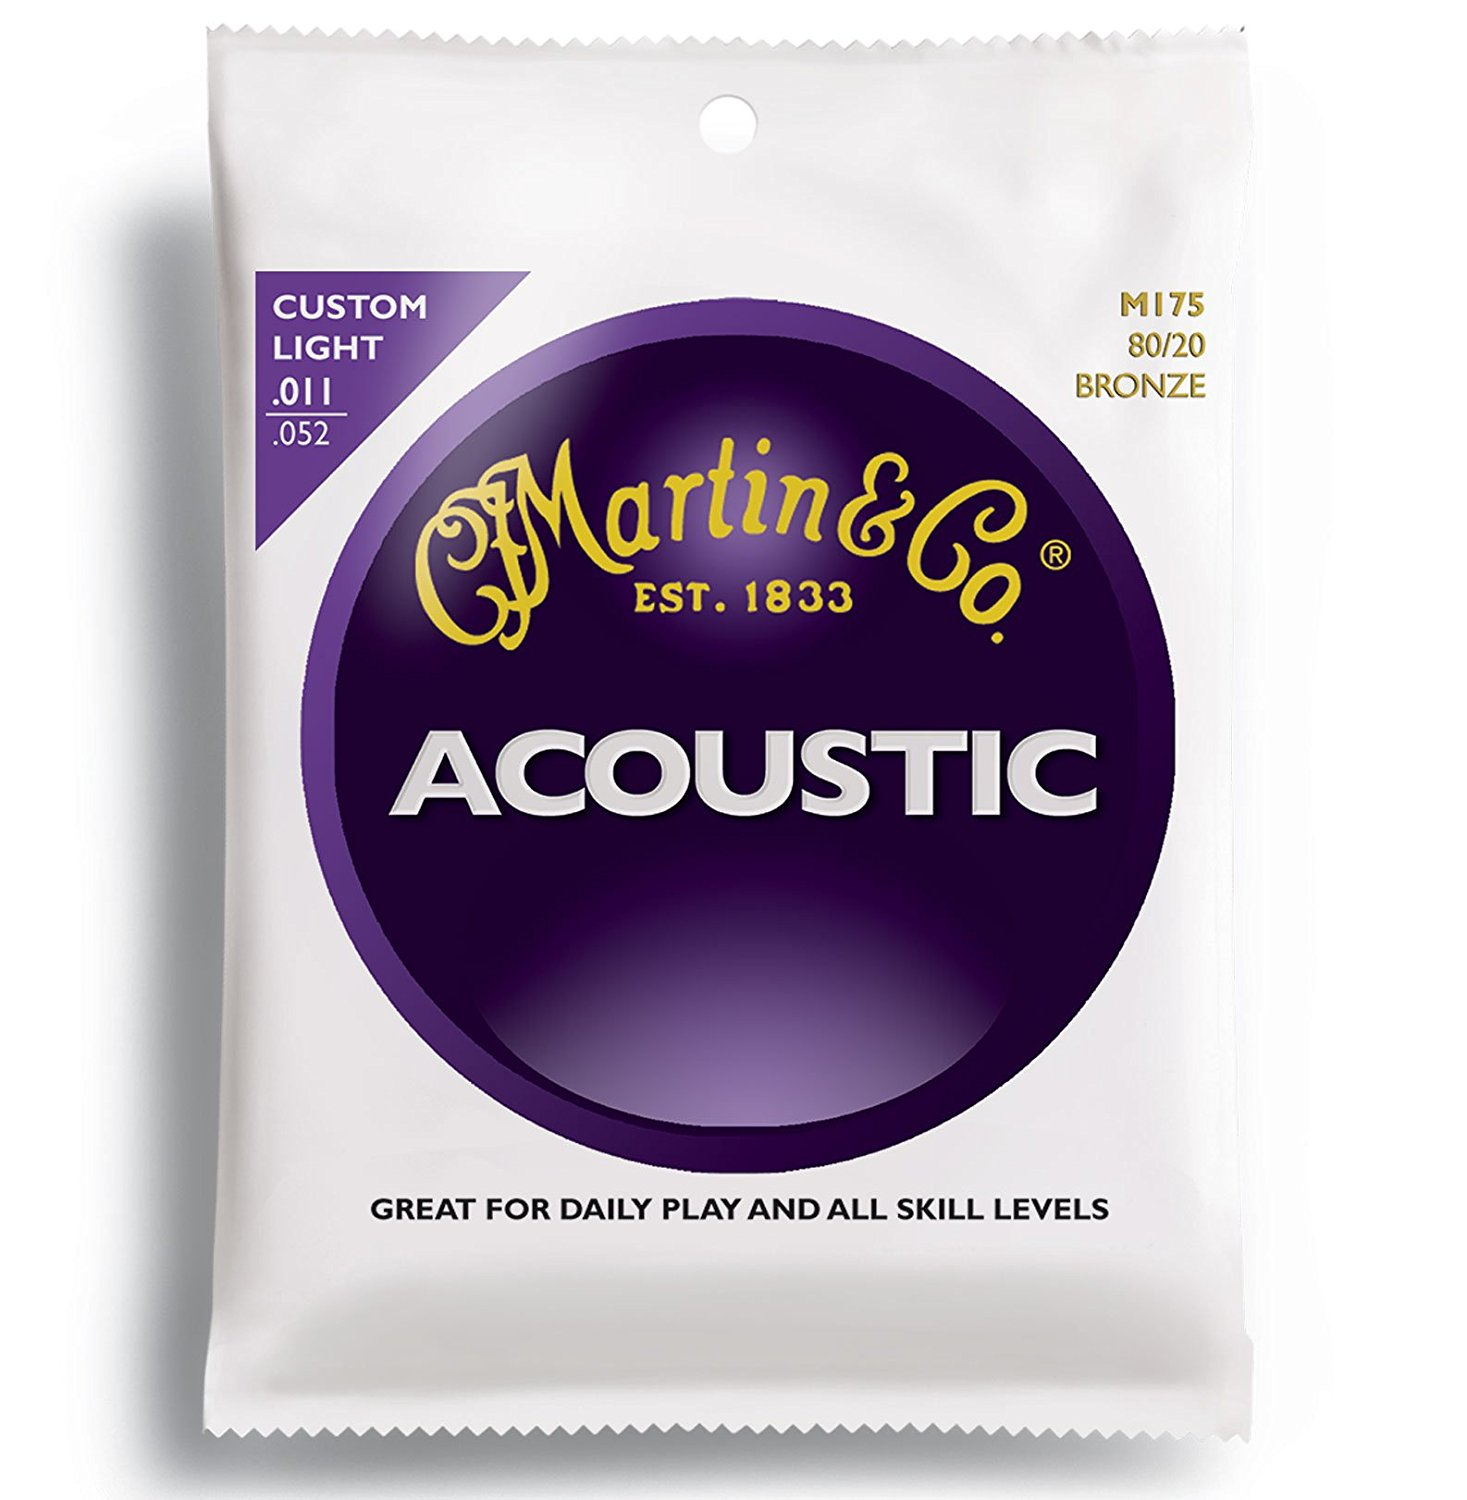 Martin M175 80/20 Acoustic Guitar Strings, Custom Light